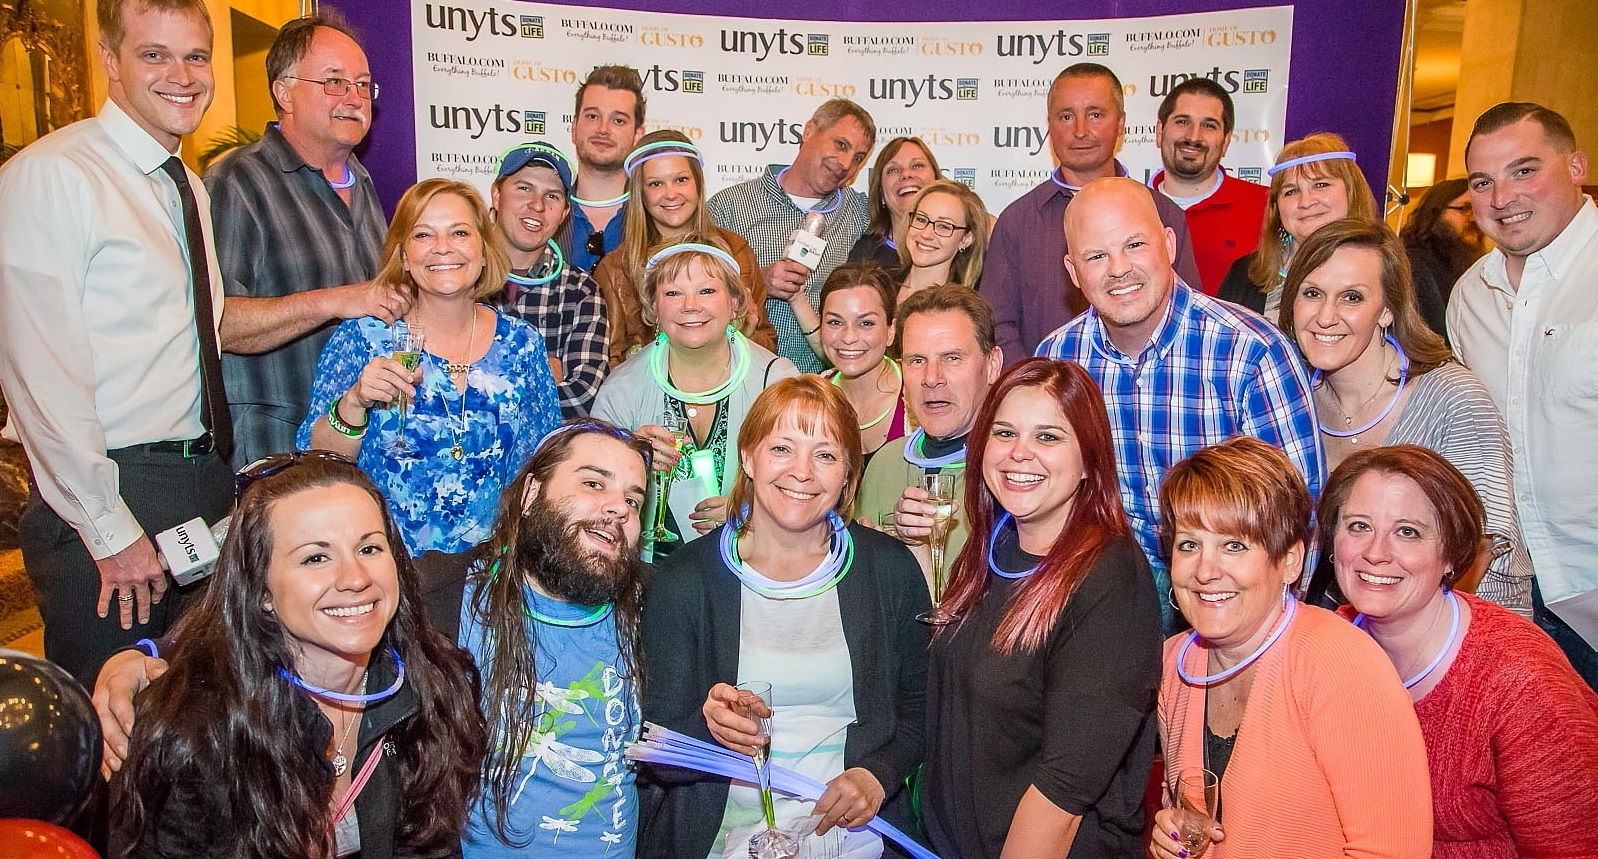 Smiling faces were in abundance at the 2015 Unyts Bucket List Bash, an even which returns for another year this Saturday. (Don Nieman/Special to The News)